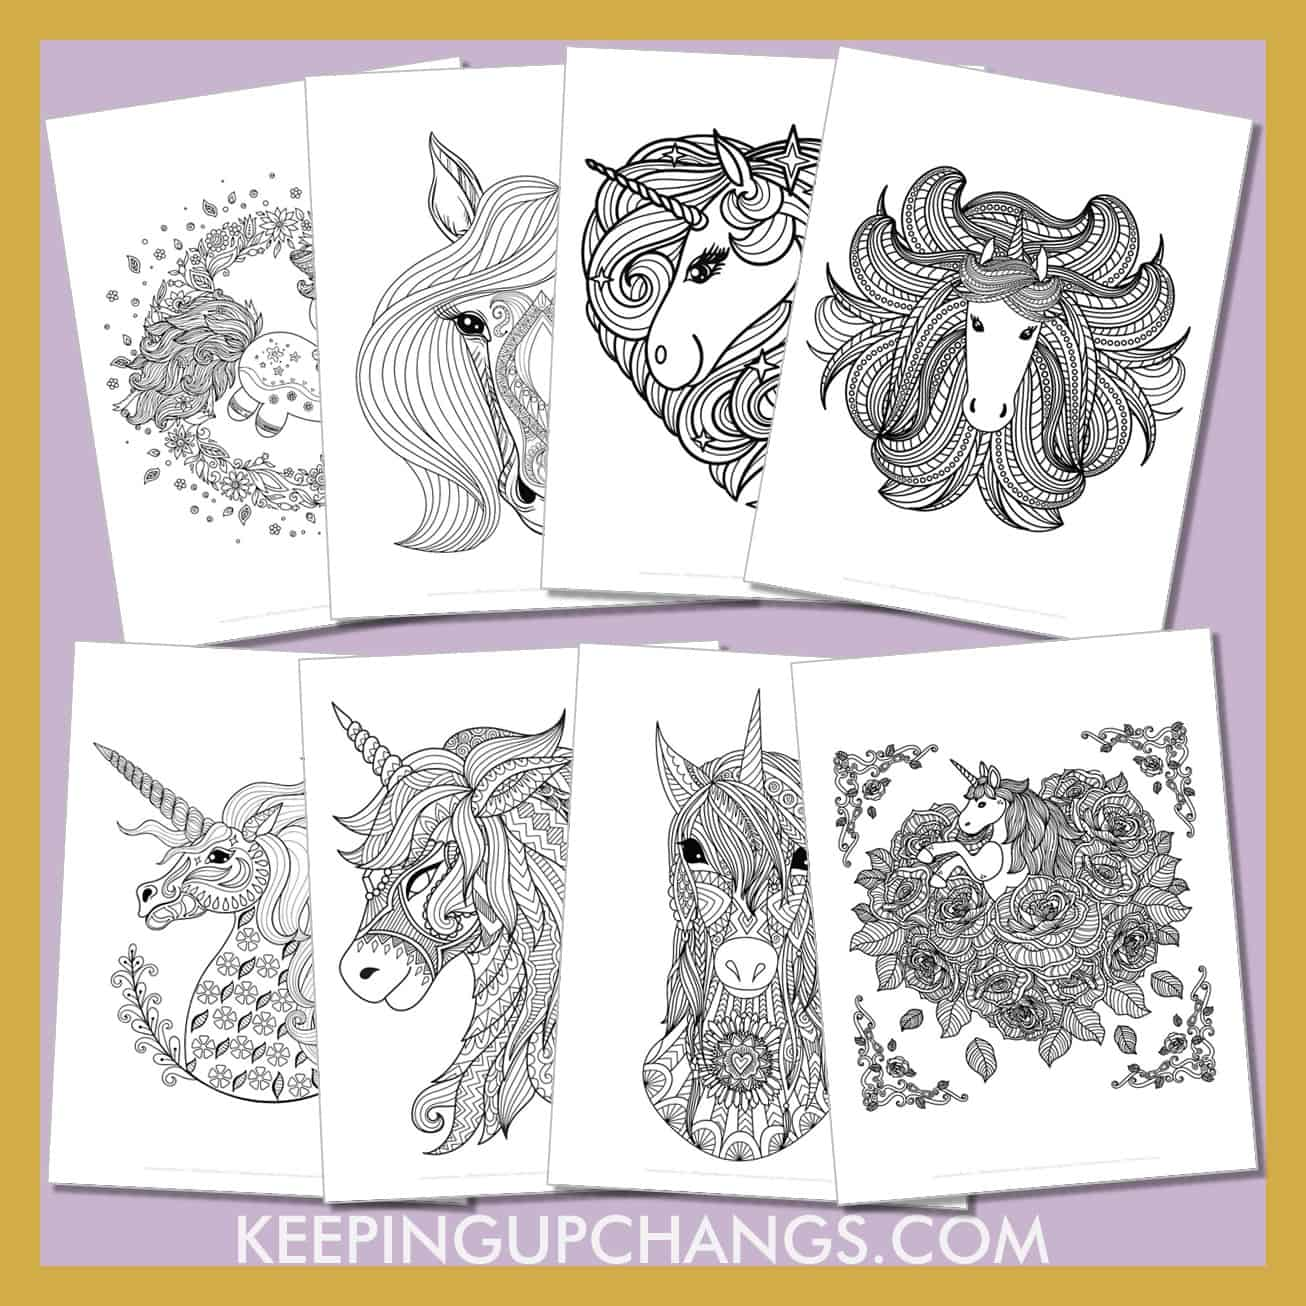 cute, realistic unicorn zentangle colouring sheets of this beautiful animal with a horn.